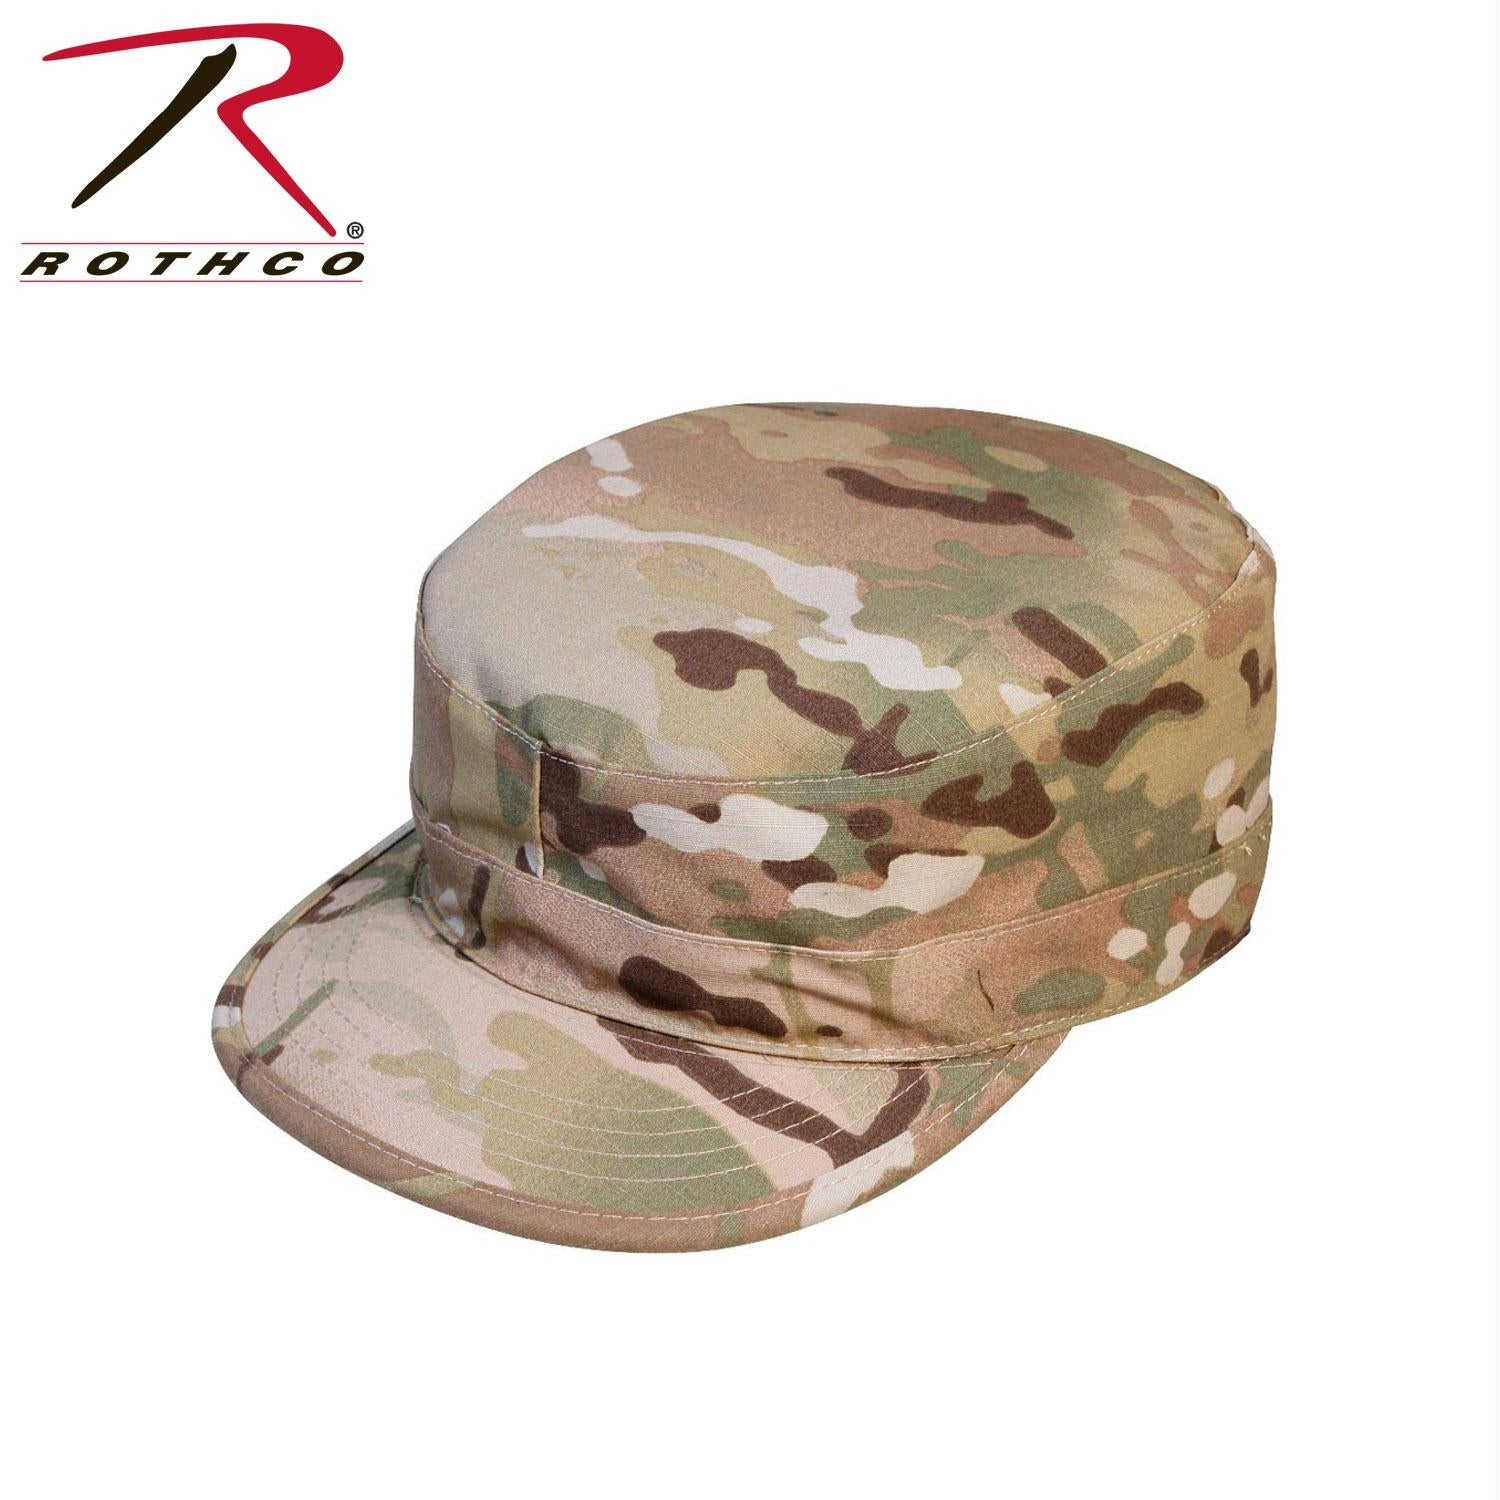 Rothco Gov't Spec 2 Ply Multicam Army Ranger Fatigue Cap